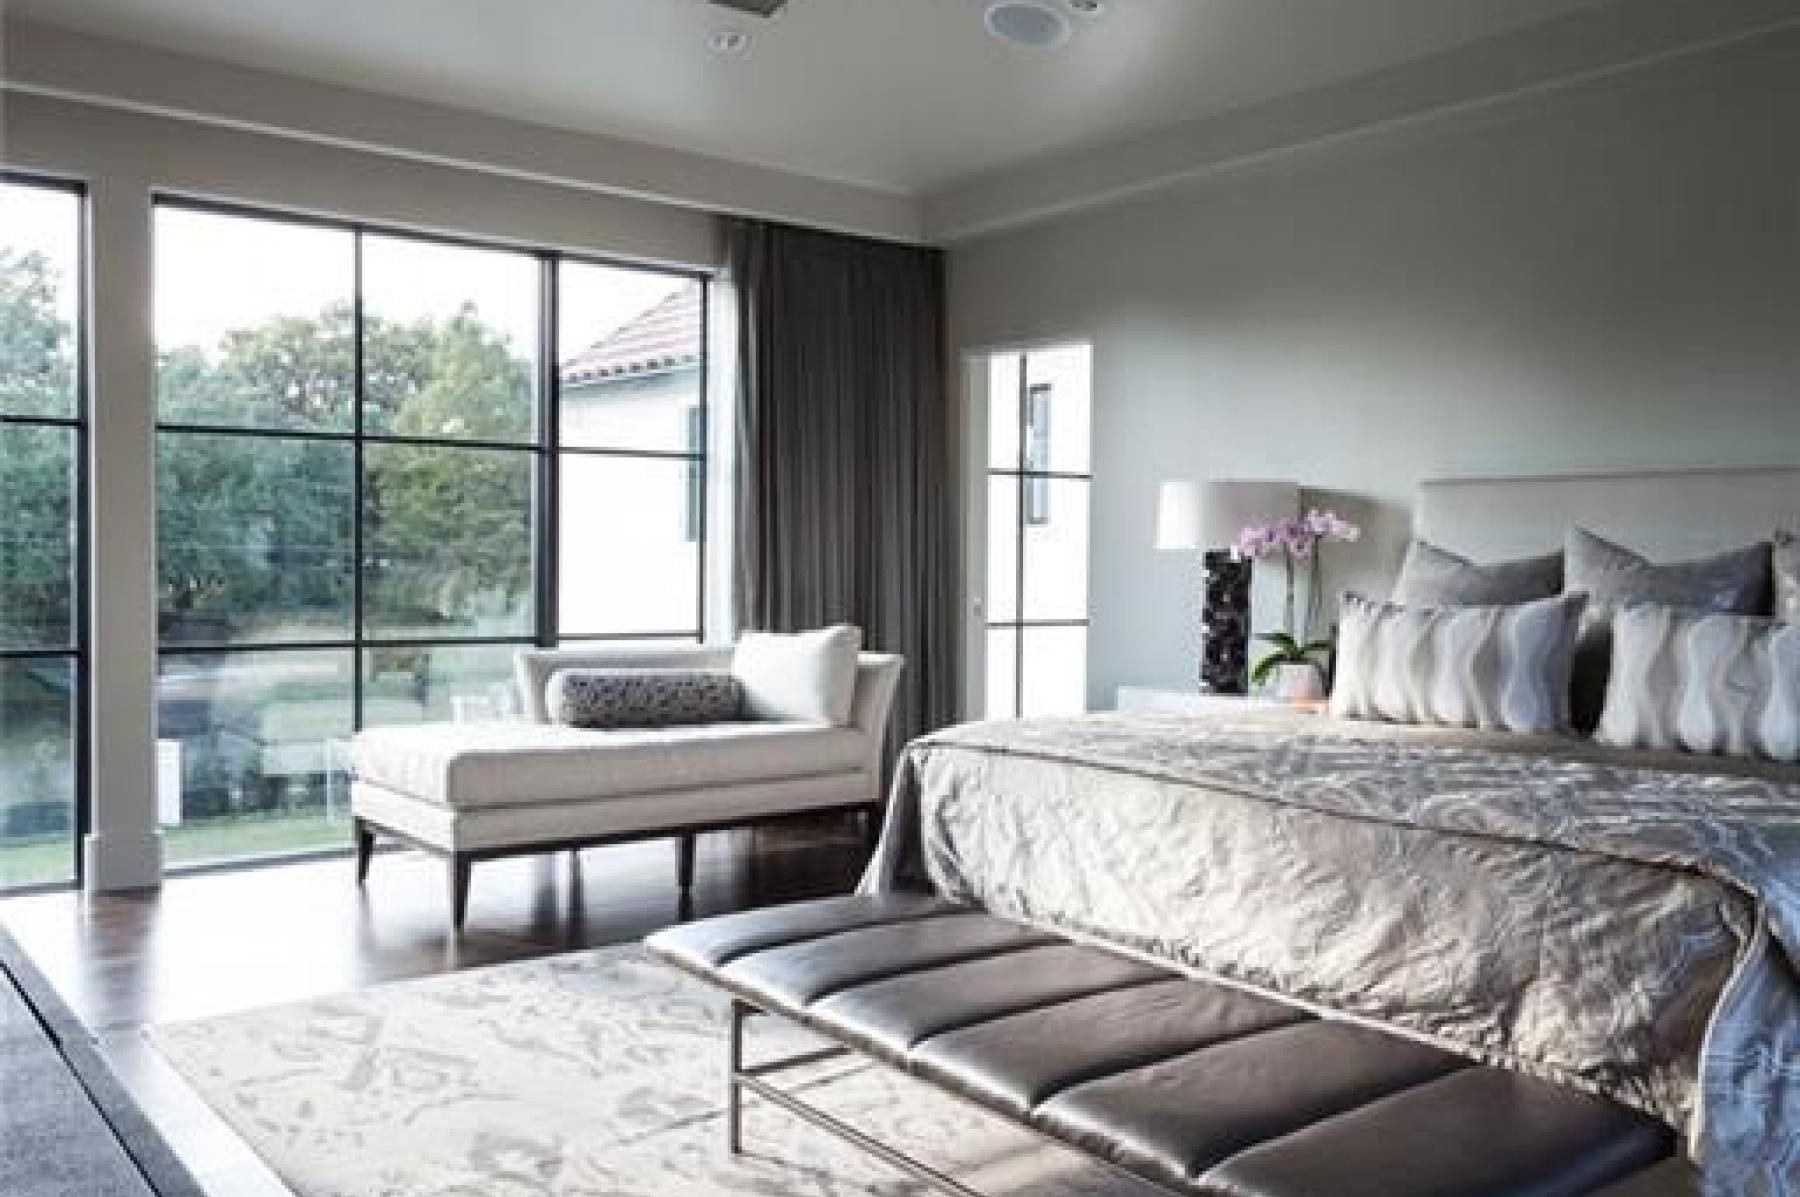 Master bedroom vs owners suite  Traditional Santa Barbara Spanish Colonial Revival done in a more